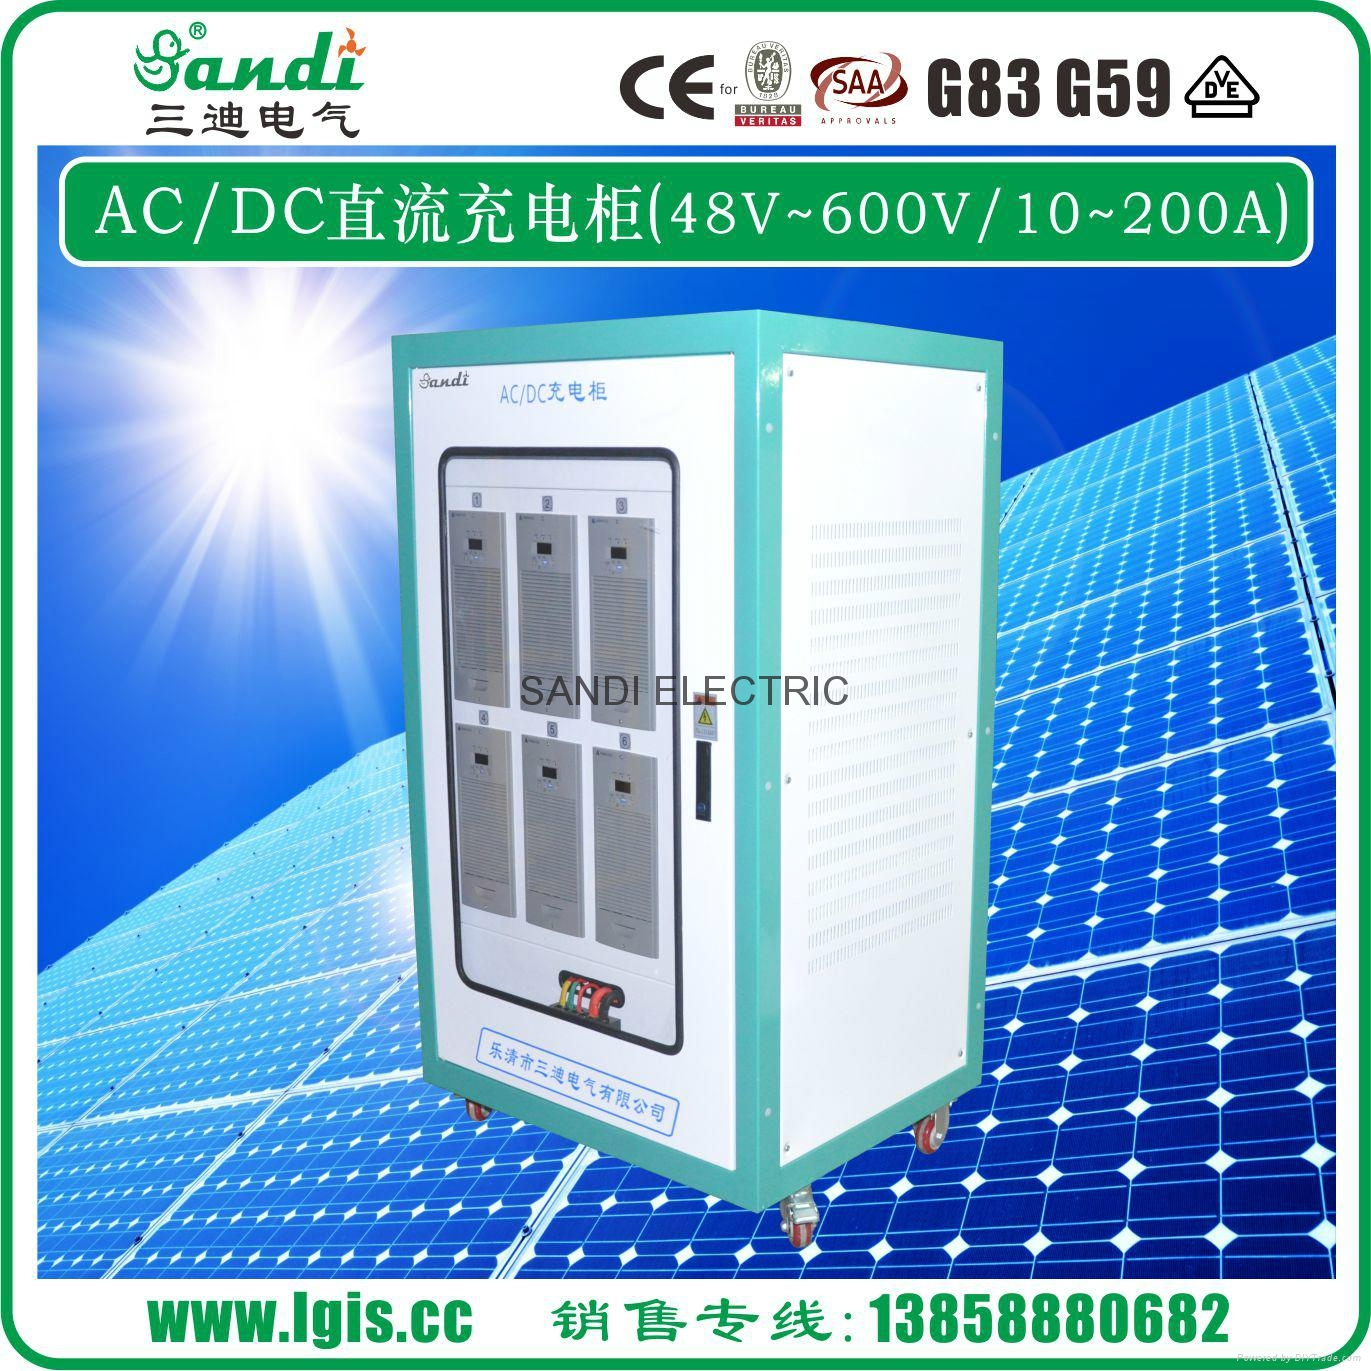 DC power battery charging Cabinet, AC to DC 240V/360V/480V